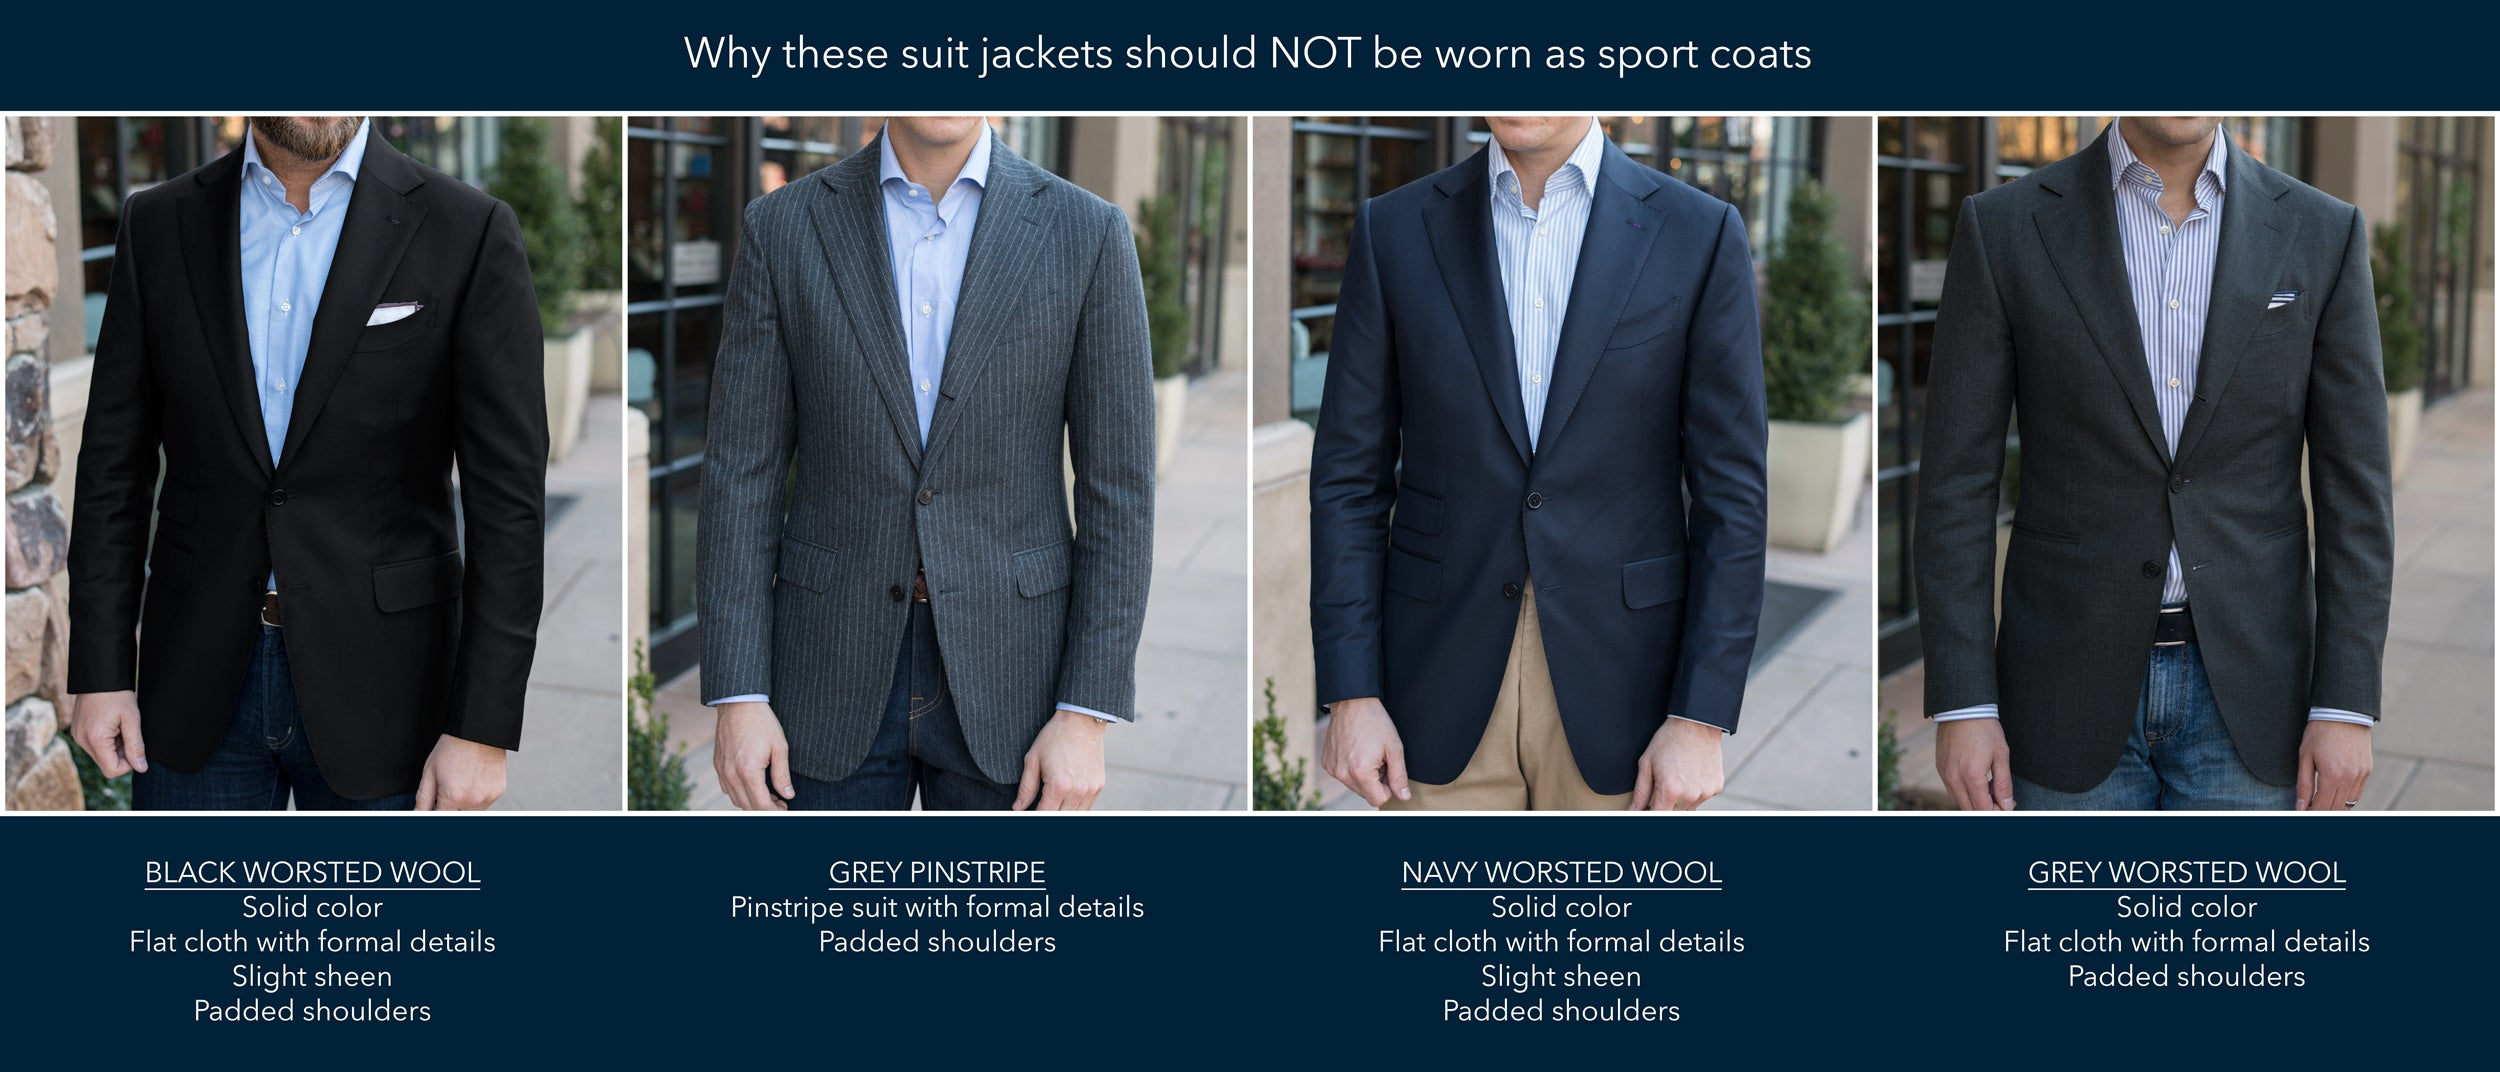 Watch How to Iron a Suit Jacket video